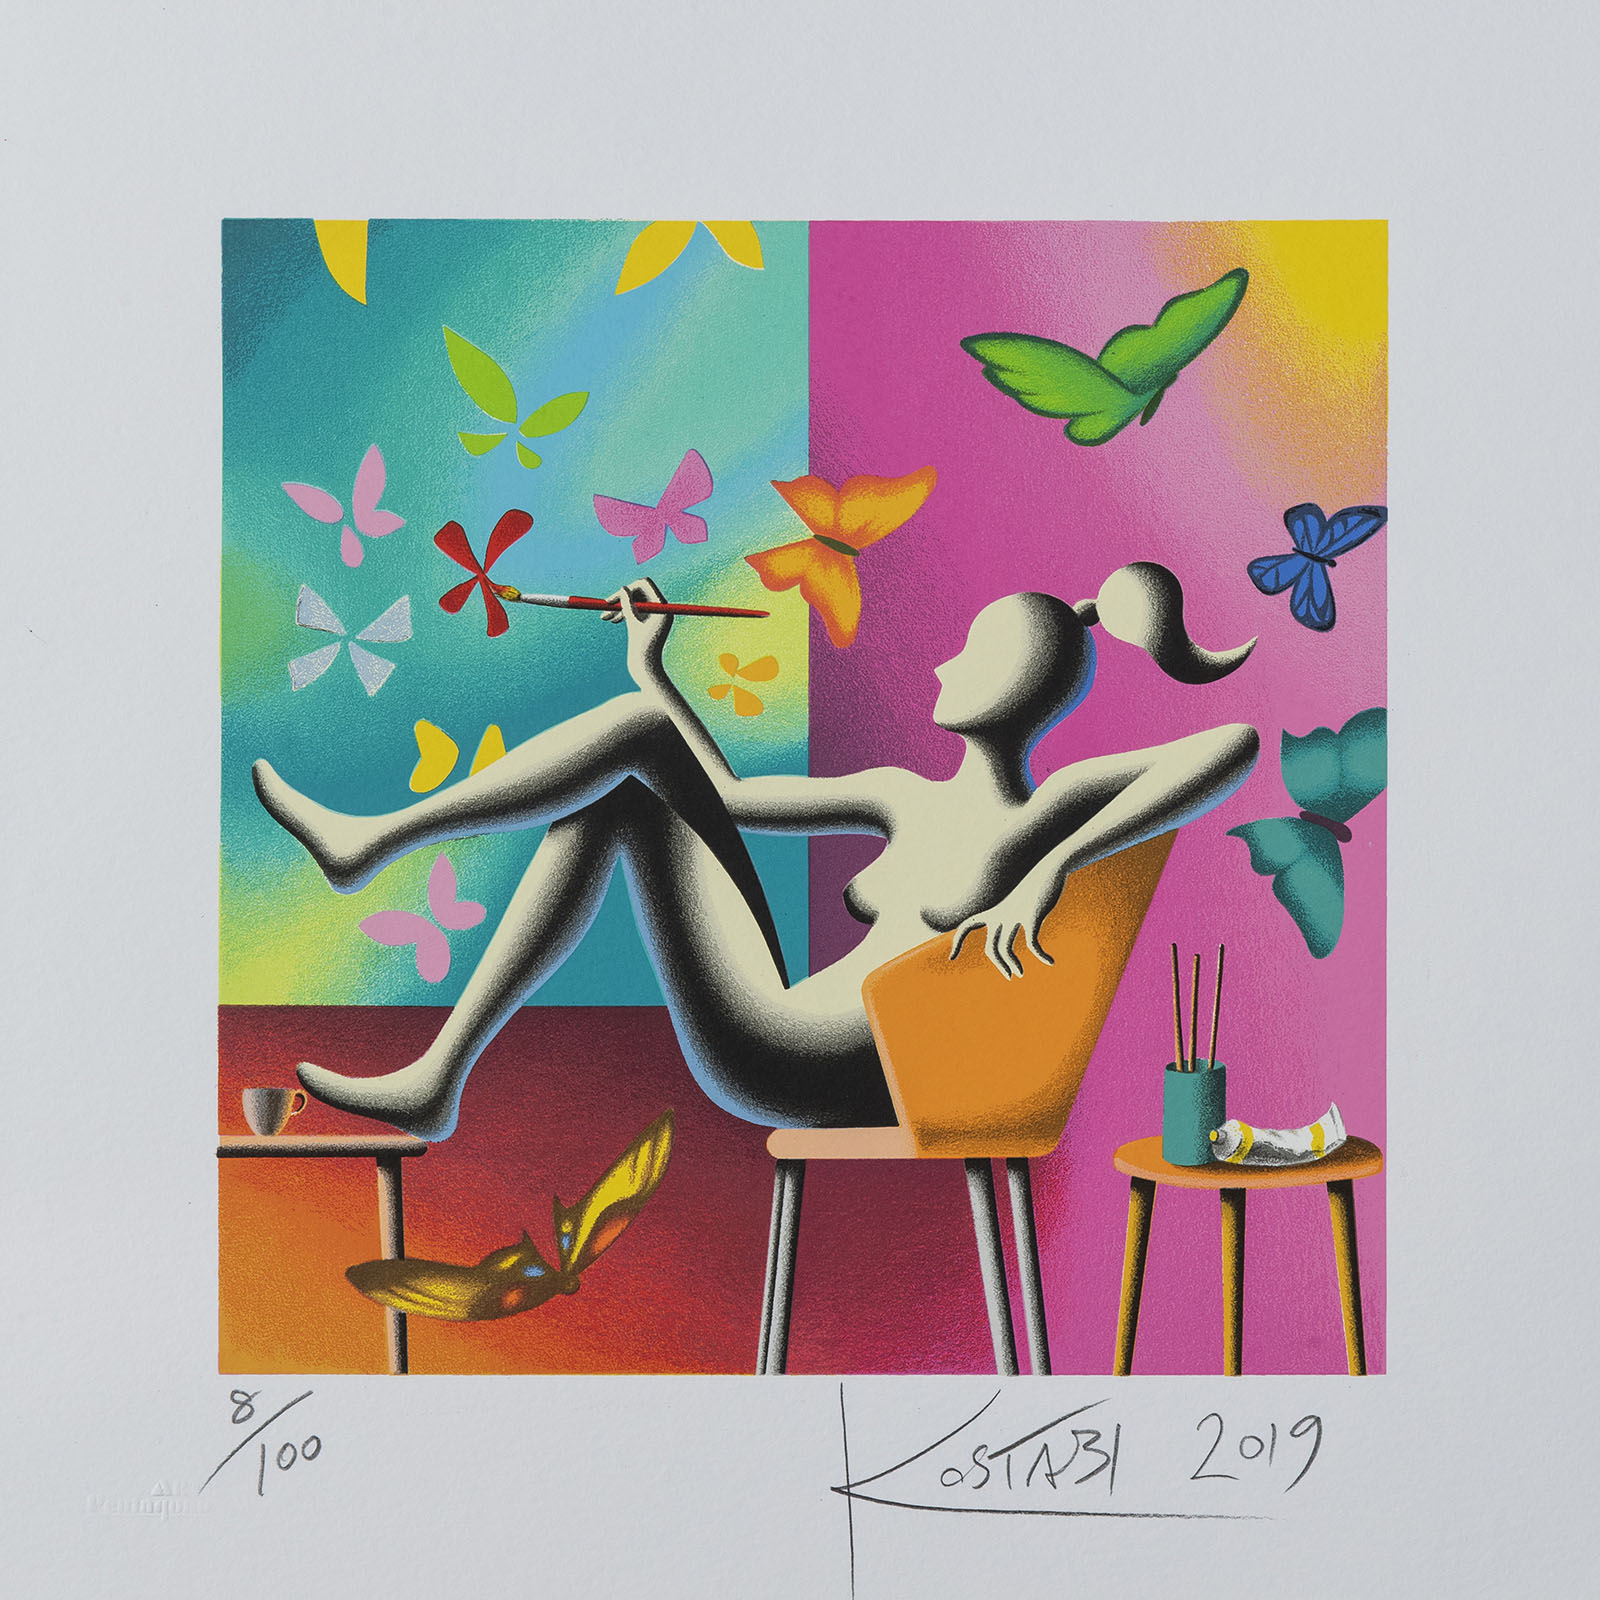 Kostabi - Flight of fantasy - 35x35